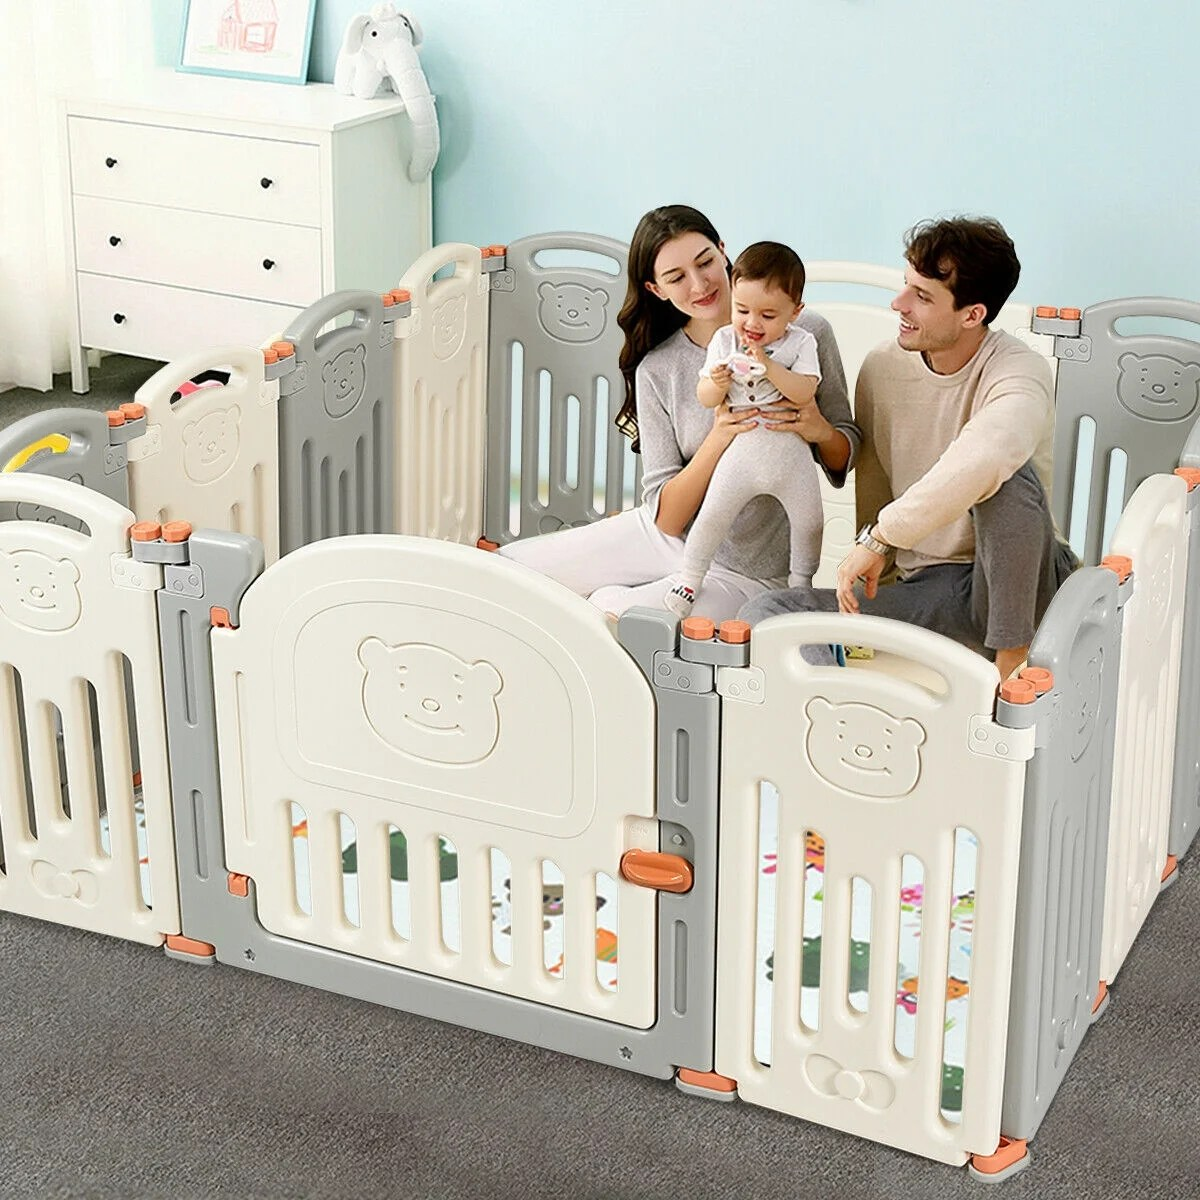 Baby Playpen How Costway 14 Panel Foldable Baby Playpen Kids Activity Center Safety Play Yard W Lock Door